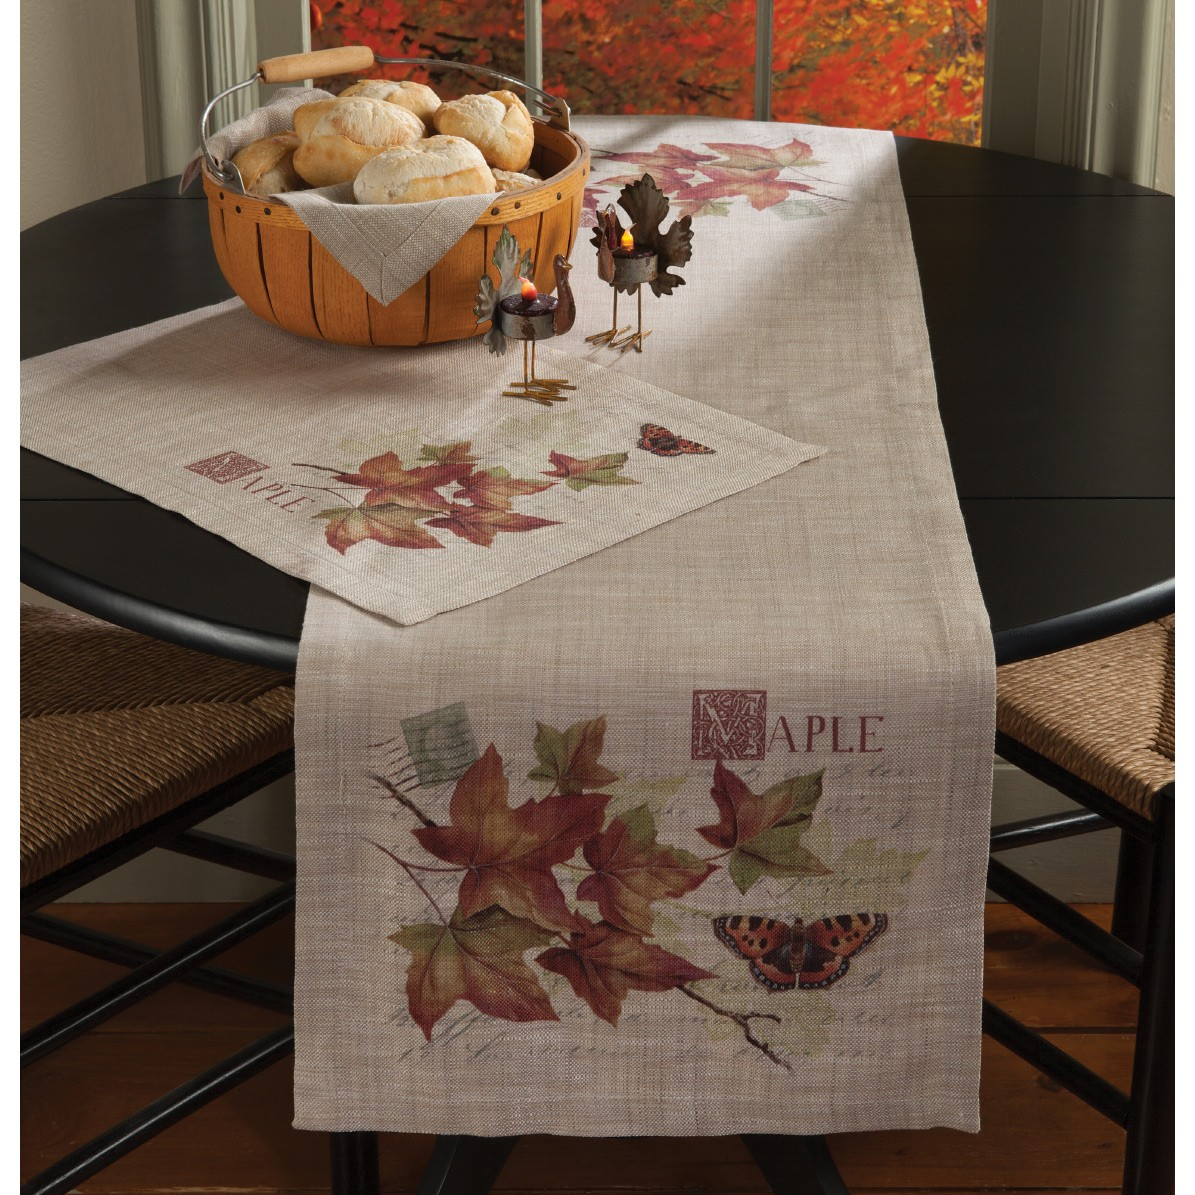 vintage inspired maple and butterfly fall table settings placemat runner lifestyle accent autumn tabletop accents wicker lawn furniture cast aluminum side gold glass nautical post